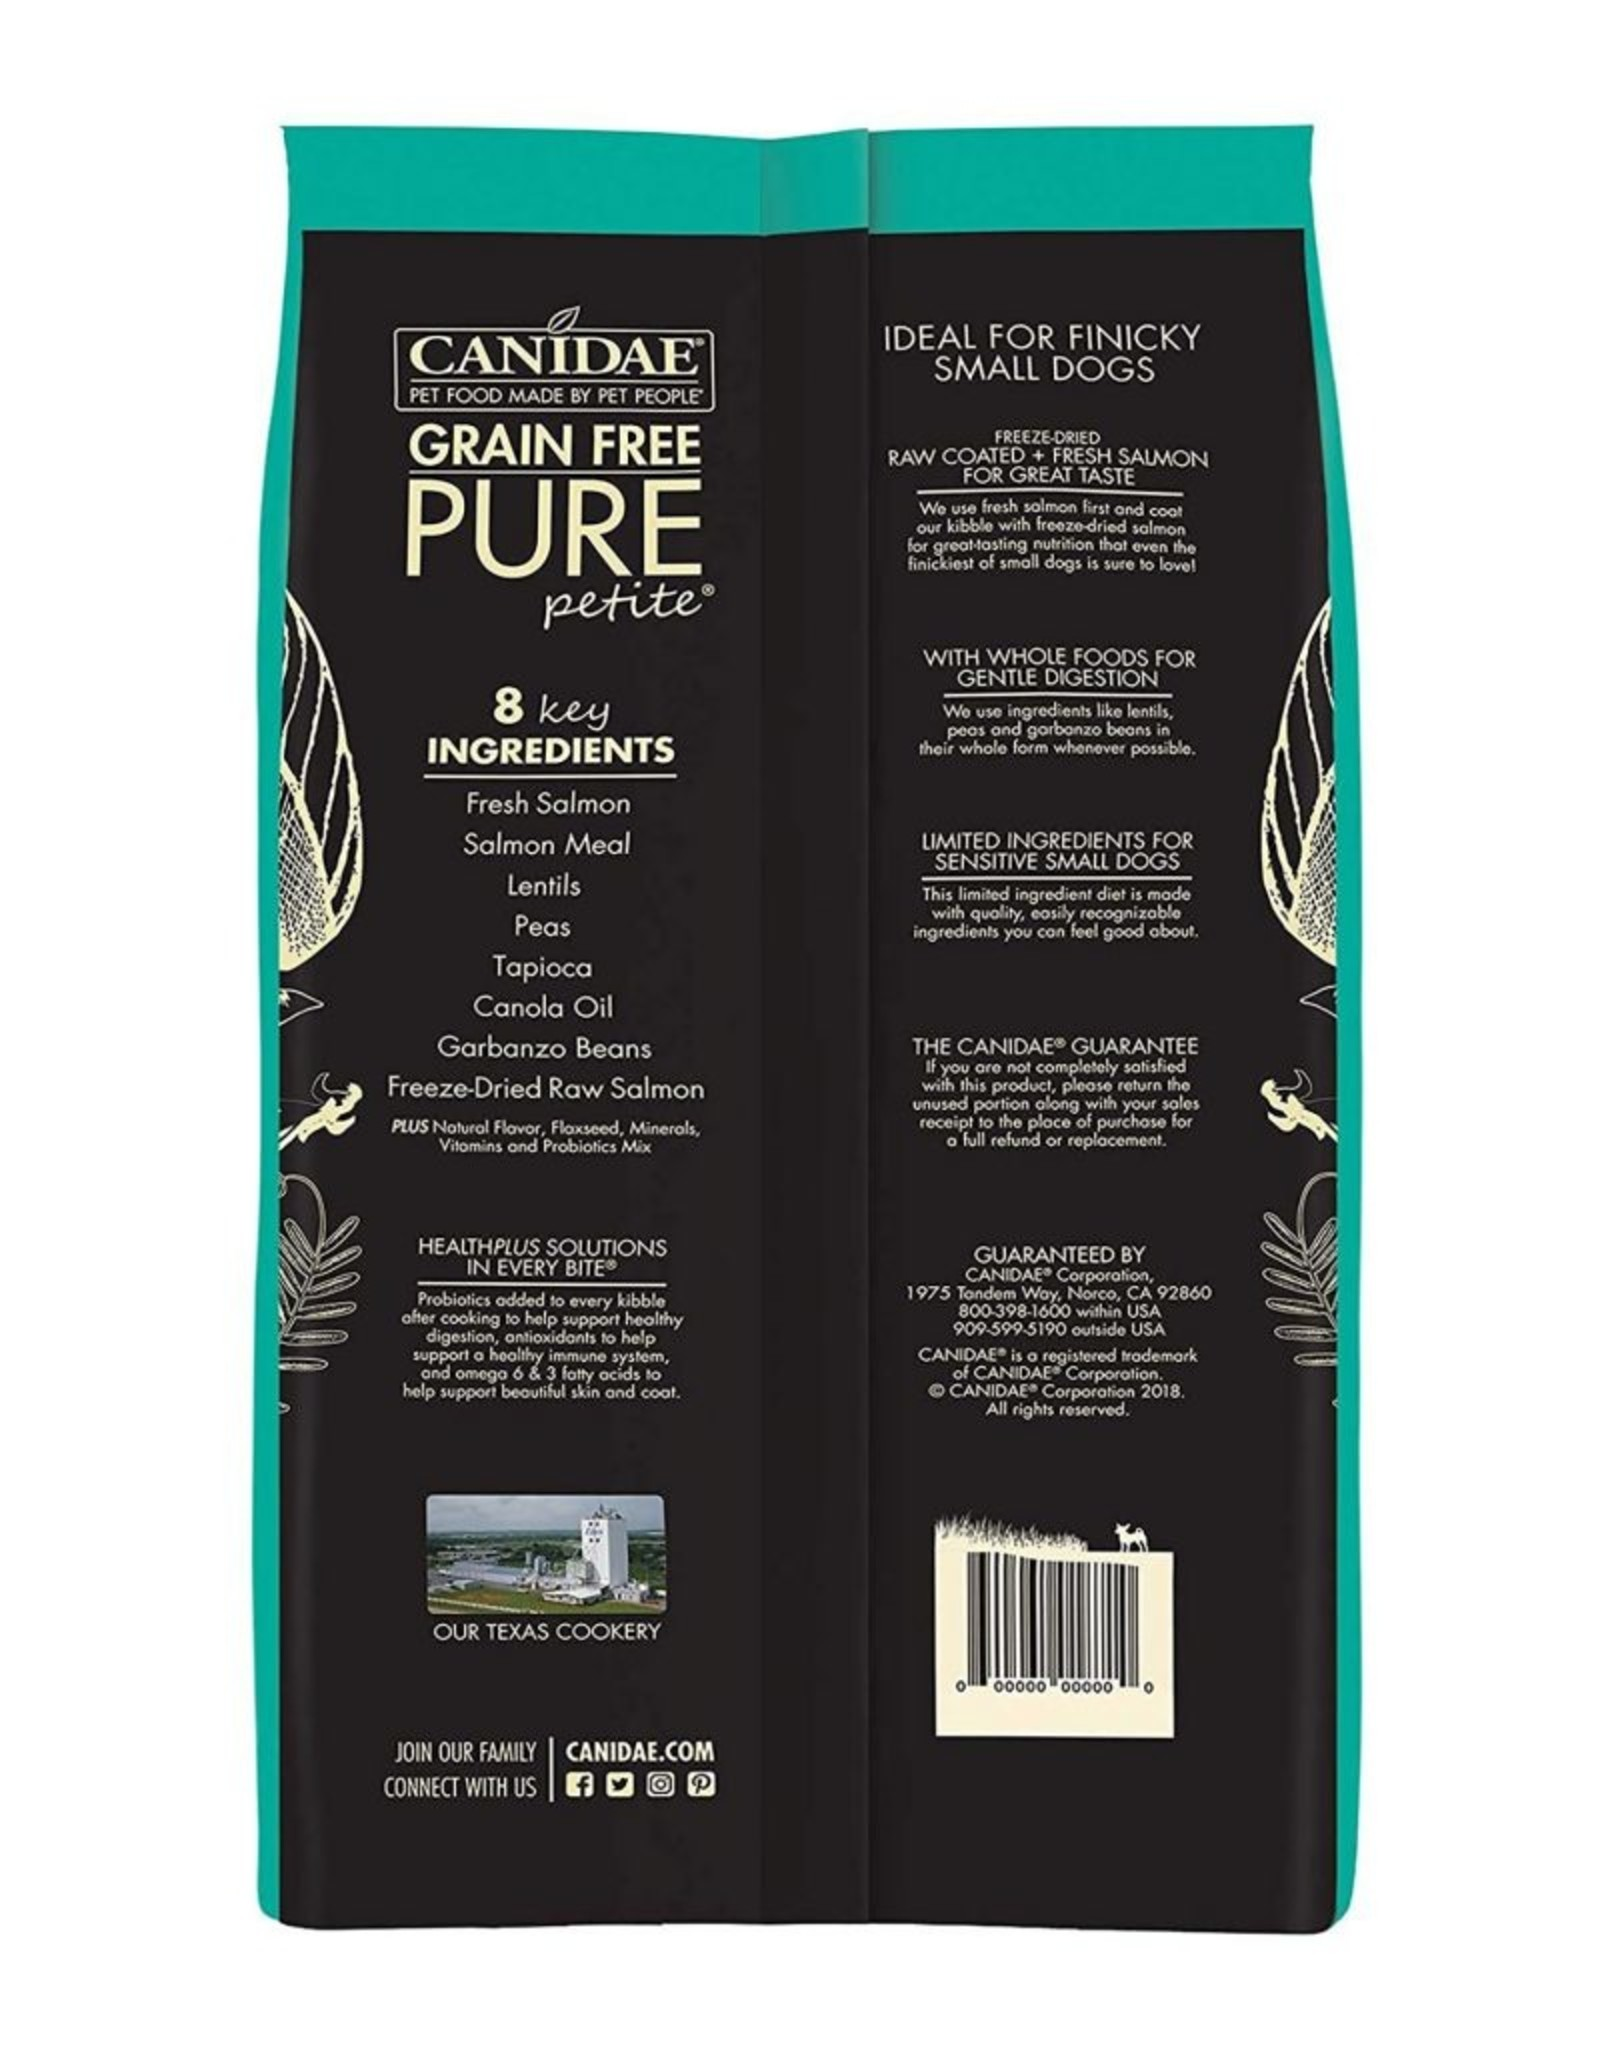 CANIDAE PET FOODS CANIDAE DOG PURE SMALL BREED PUPPY RAW COATED SALMON 10LBS